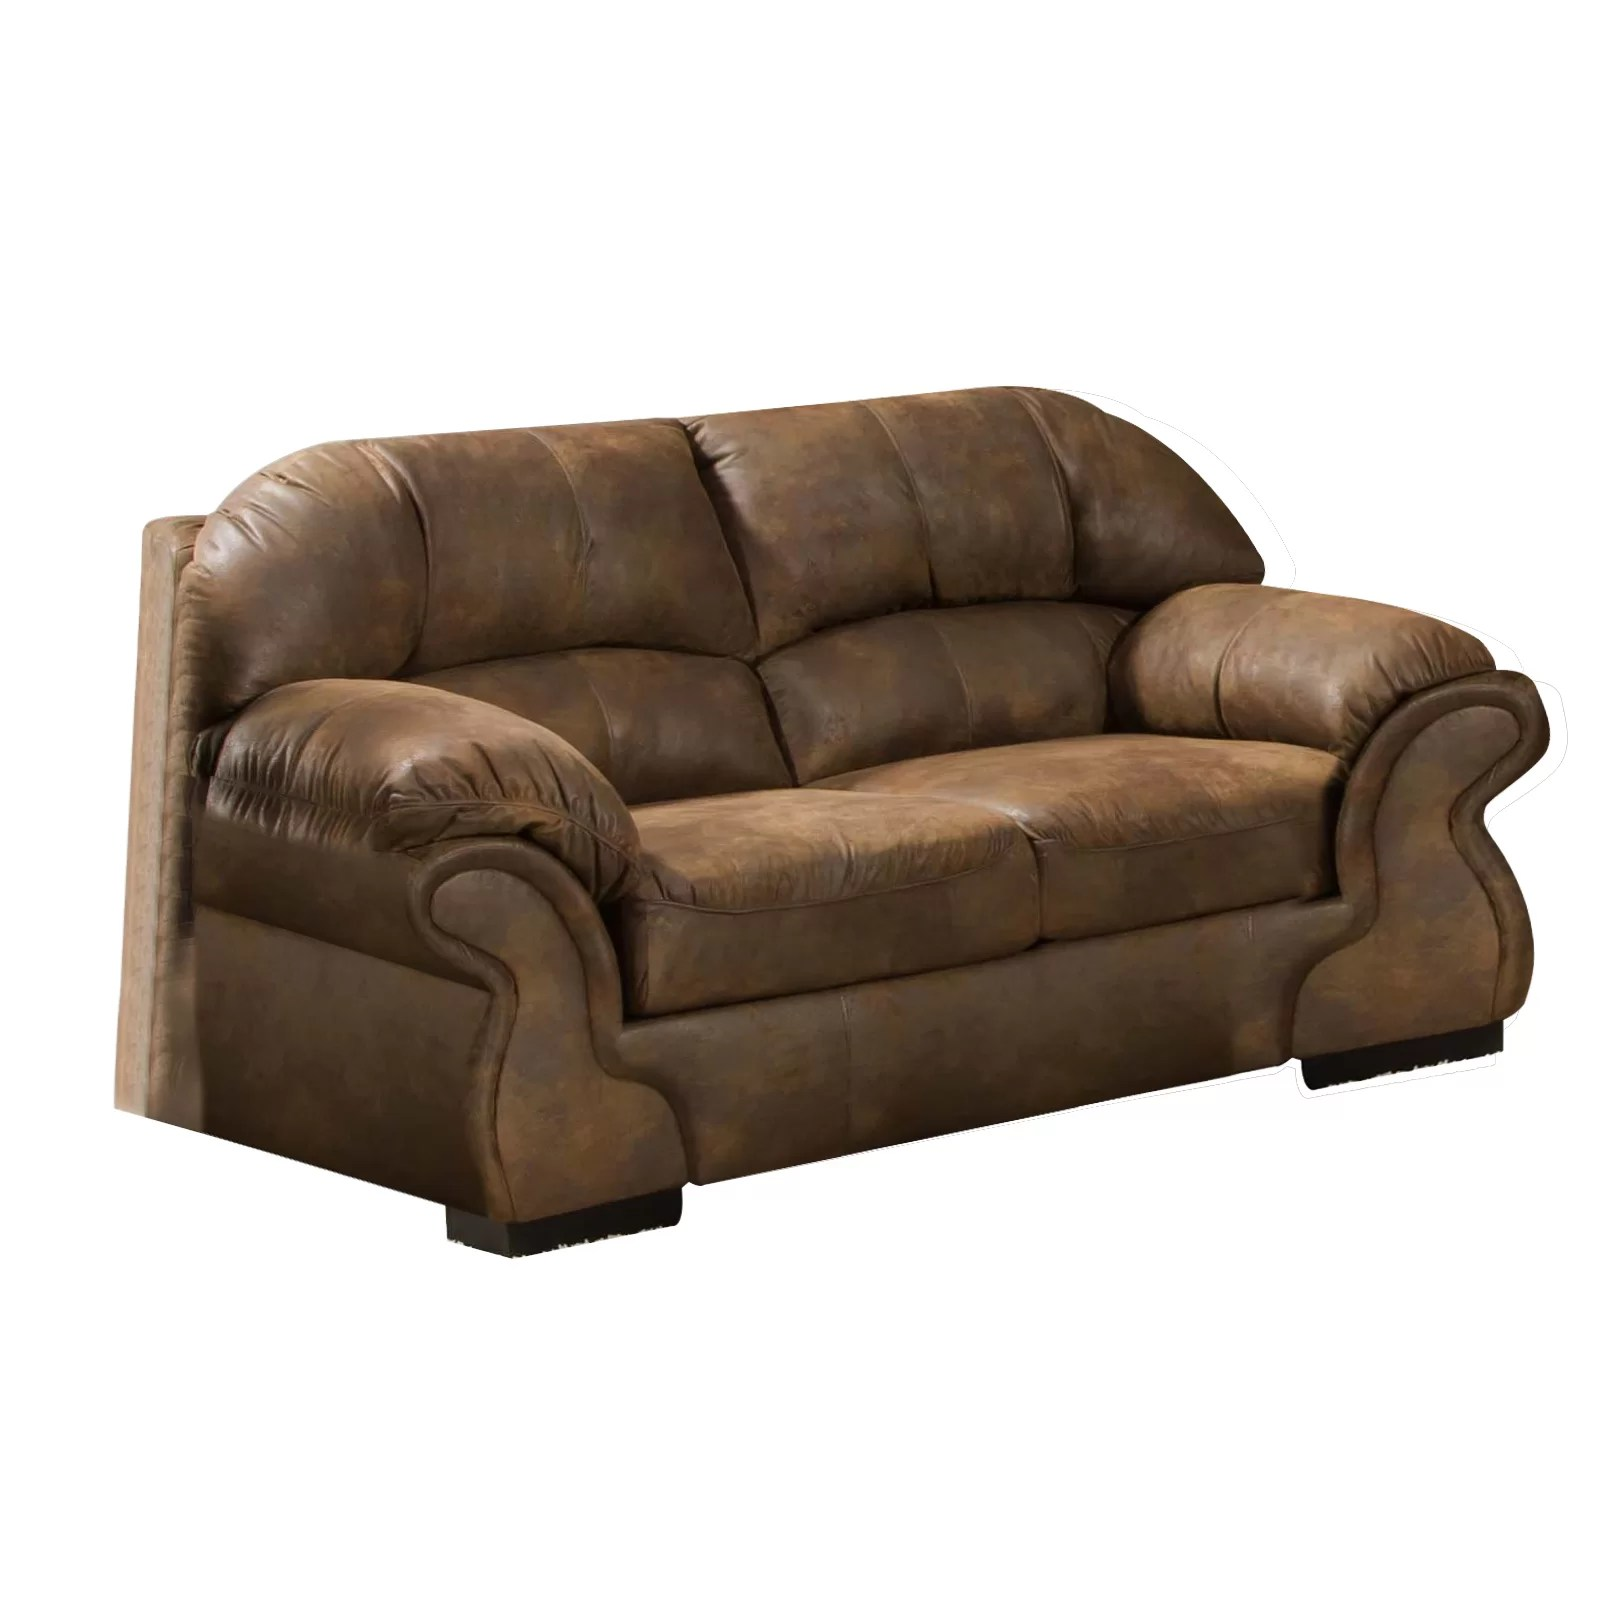 simmons sofa and loveseat durable bed upholstery pinto reviews wayfair